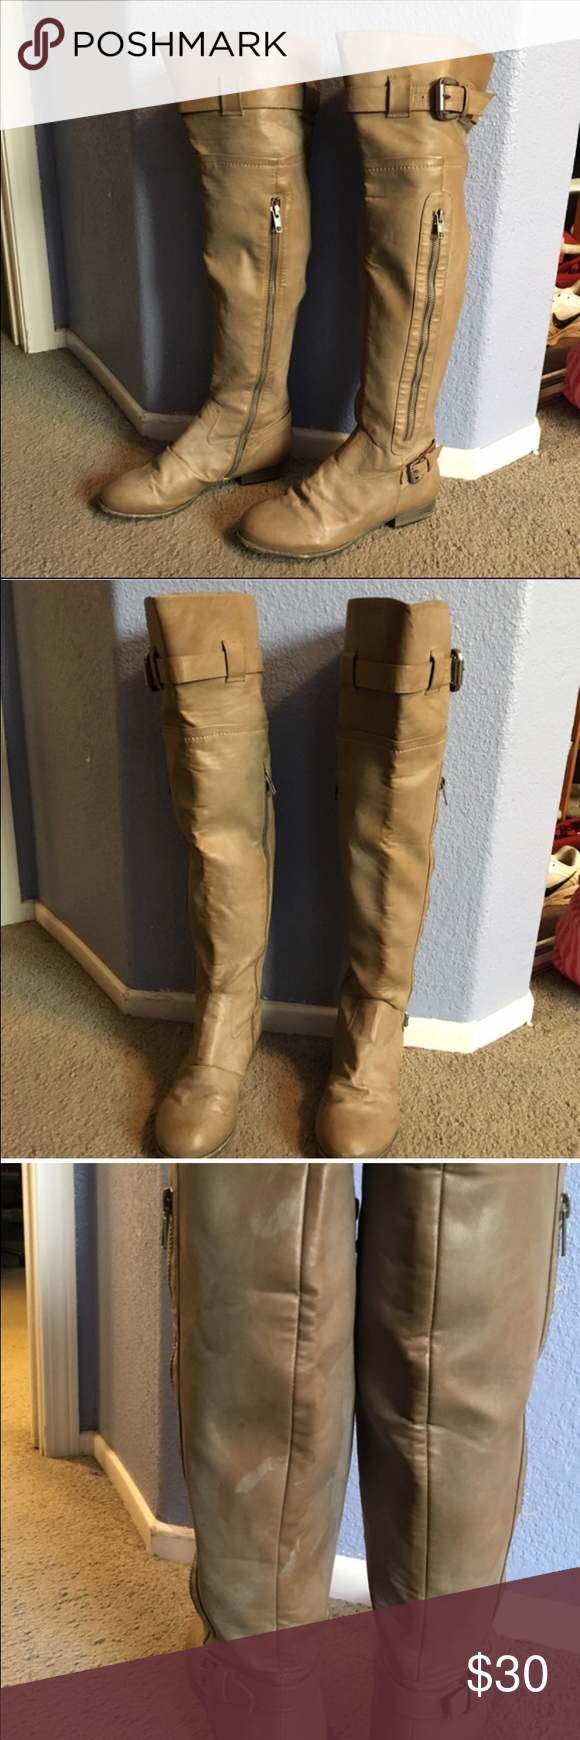 Bakers over the knee boot These are stone gray in color (grayish tan). Preloved Bakers over the knee boots. Decorative zipper detailing on the outside and buckle on top. Zipper closure is on the inside. In good condition, but there are a couple scuff marks on the back of the left boot. Color looks great with just about anything! Perfect for that fall, winter, or early spring outfit  true to size Bakers Shoes Over the Knee Boots